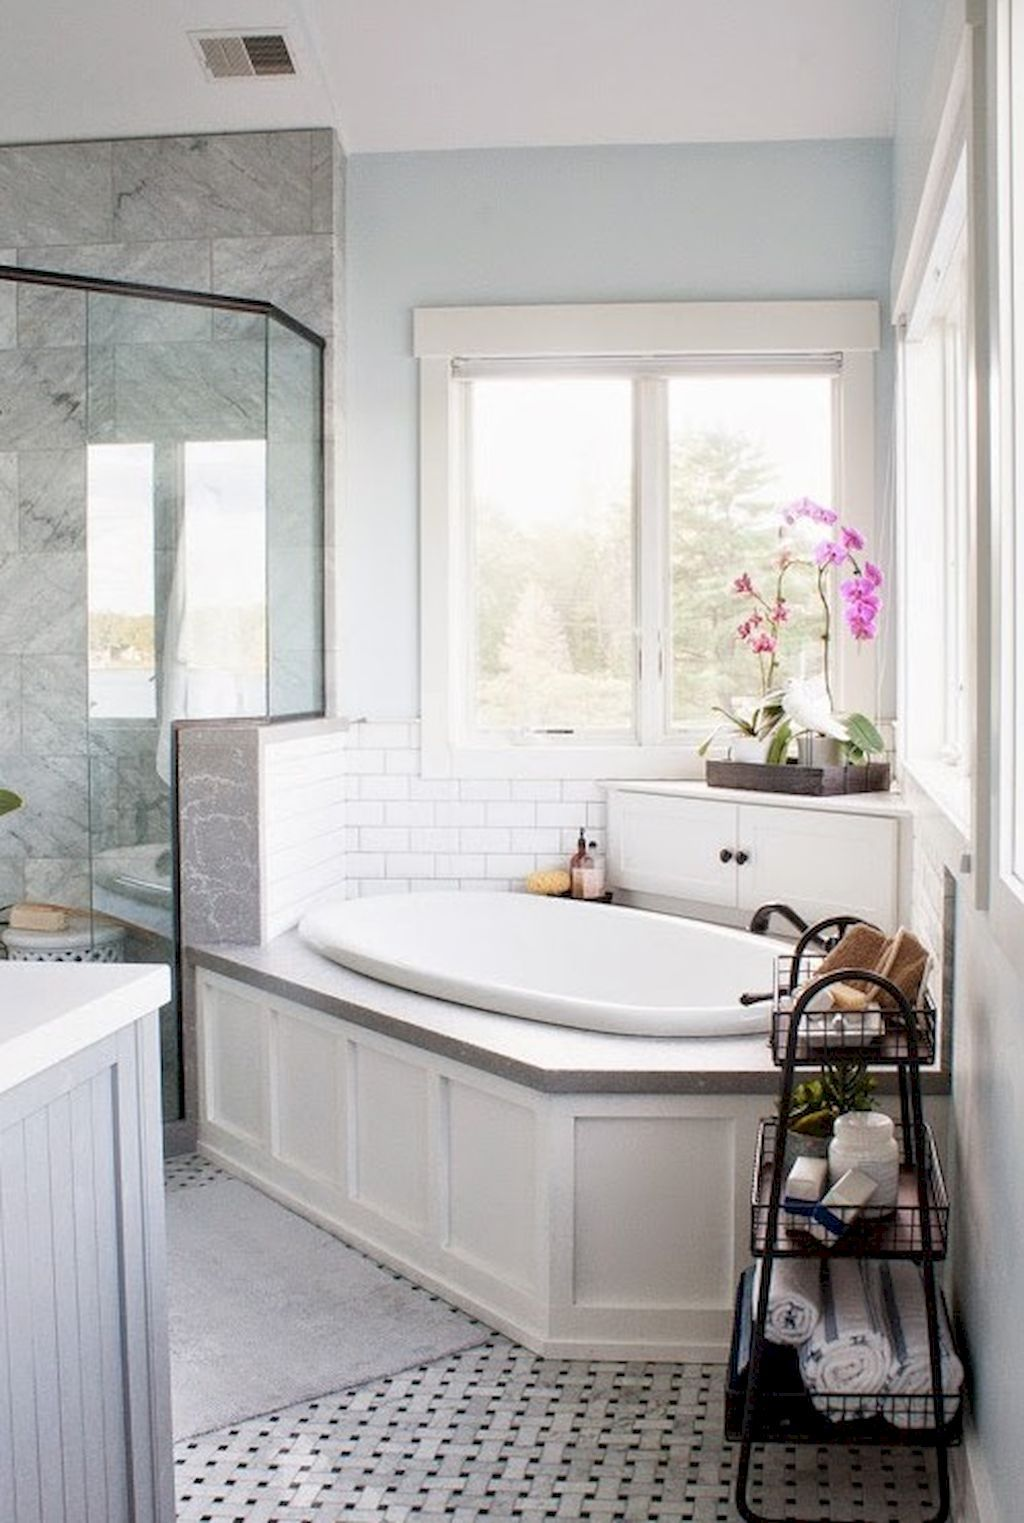 50 Small Master Bathroom Makeover Ideas on A Budget | Master ...